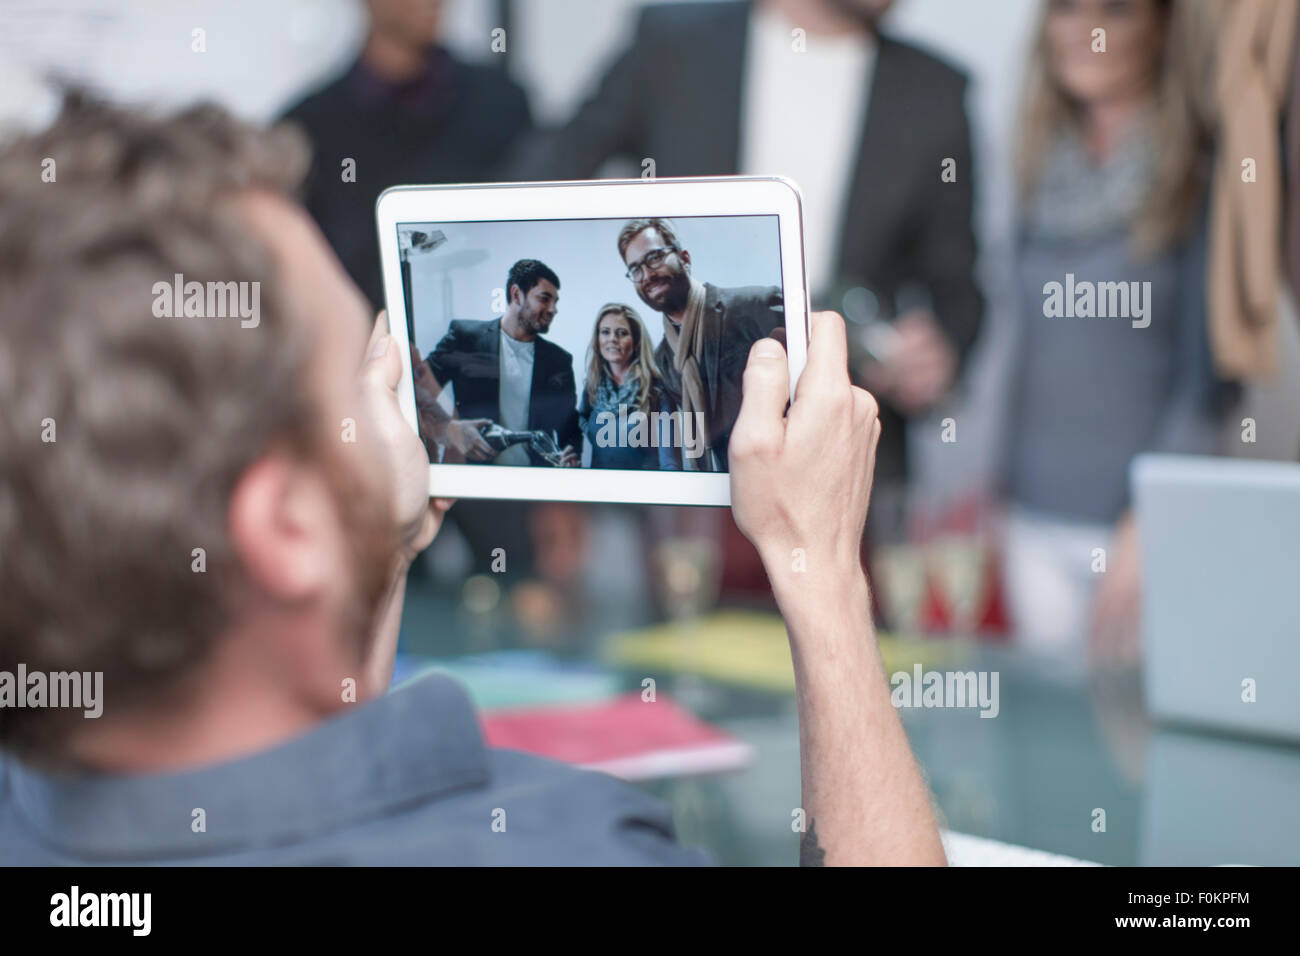 Man taking a photo of colleagues on a digital tablet - Stock Image